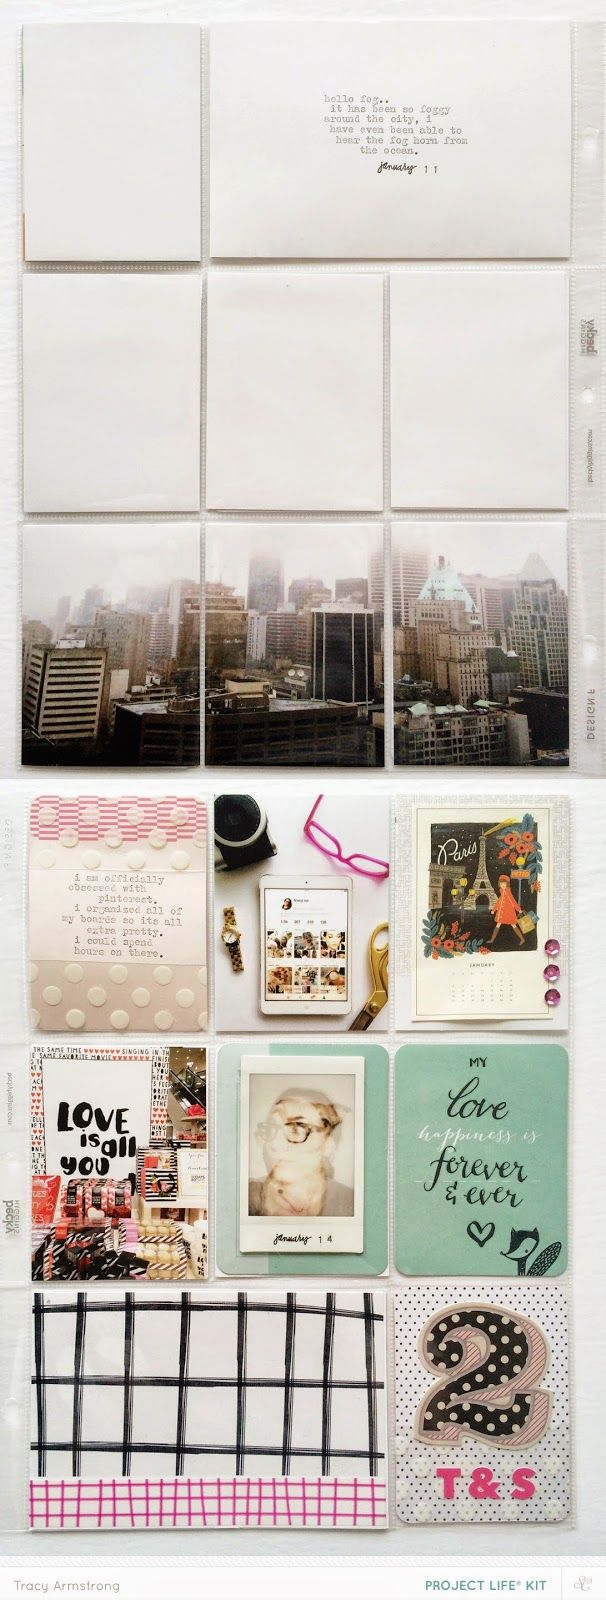 How to scrapbook with project life - Studio Calico Cirque Project Life Kit The Single Girl S Scrapbook